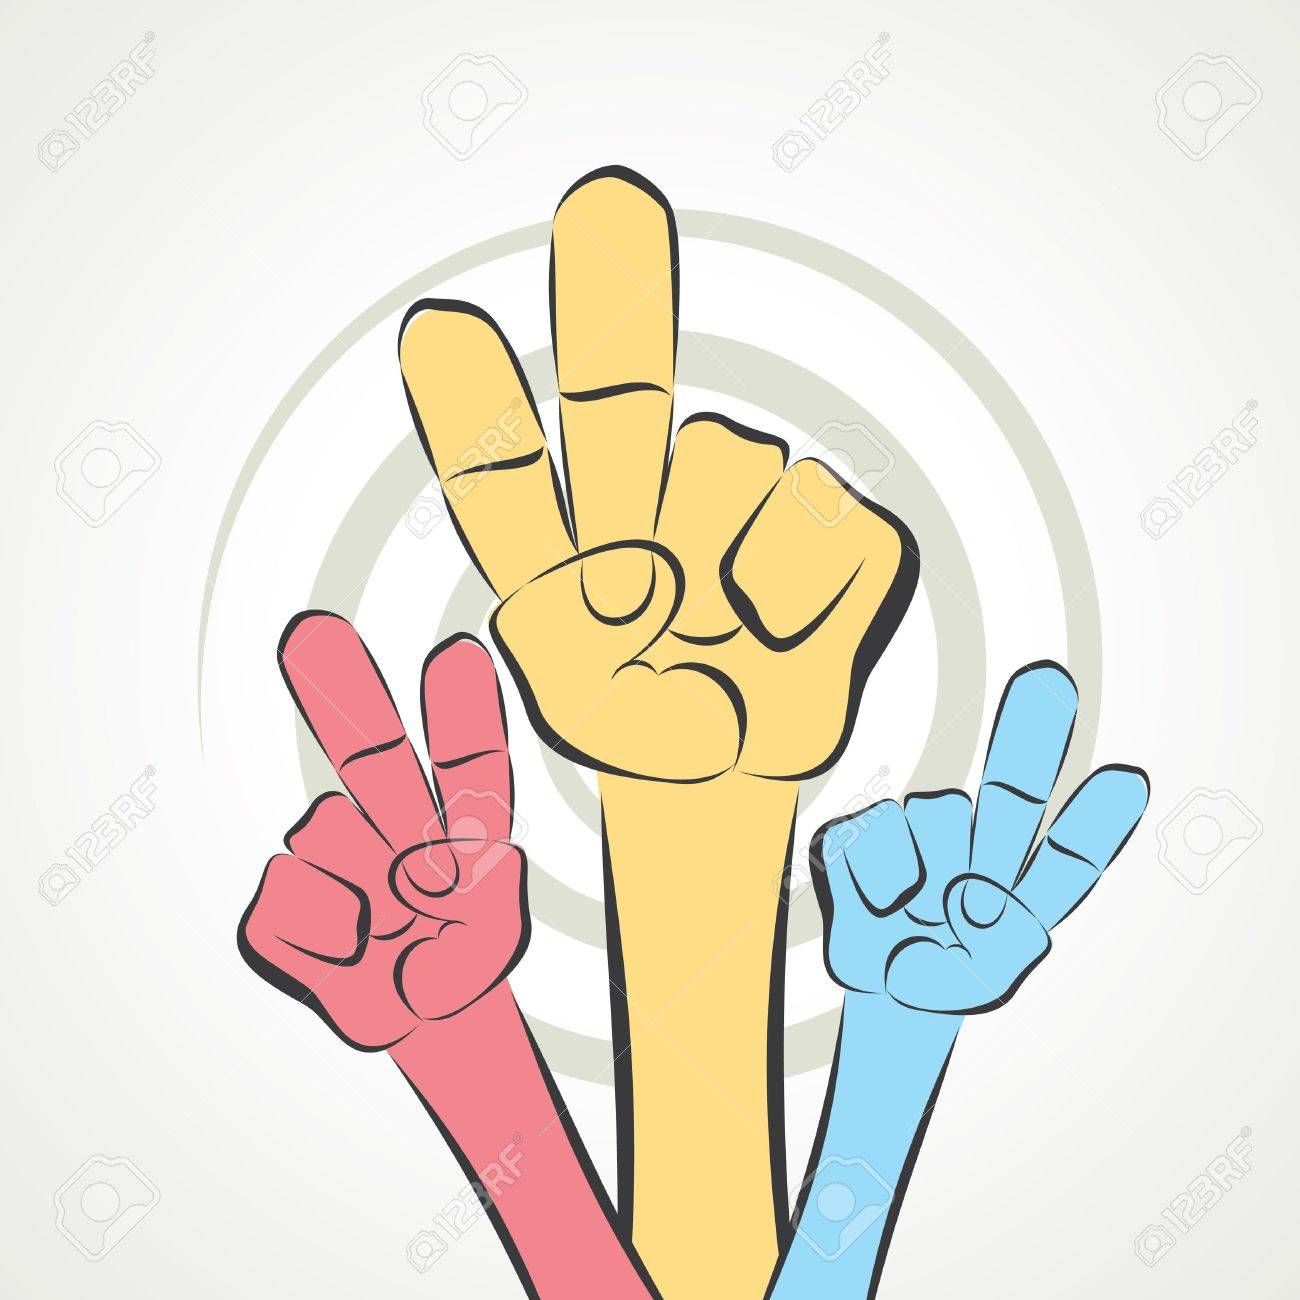 hand show victory sign stock vector Stock Vector - 17203656